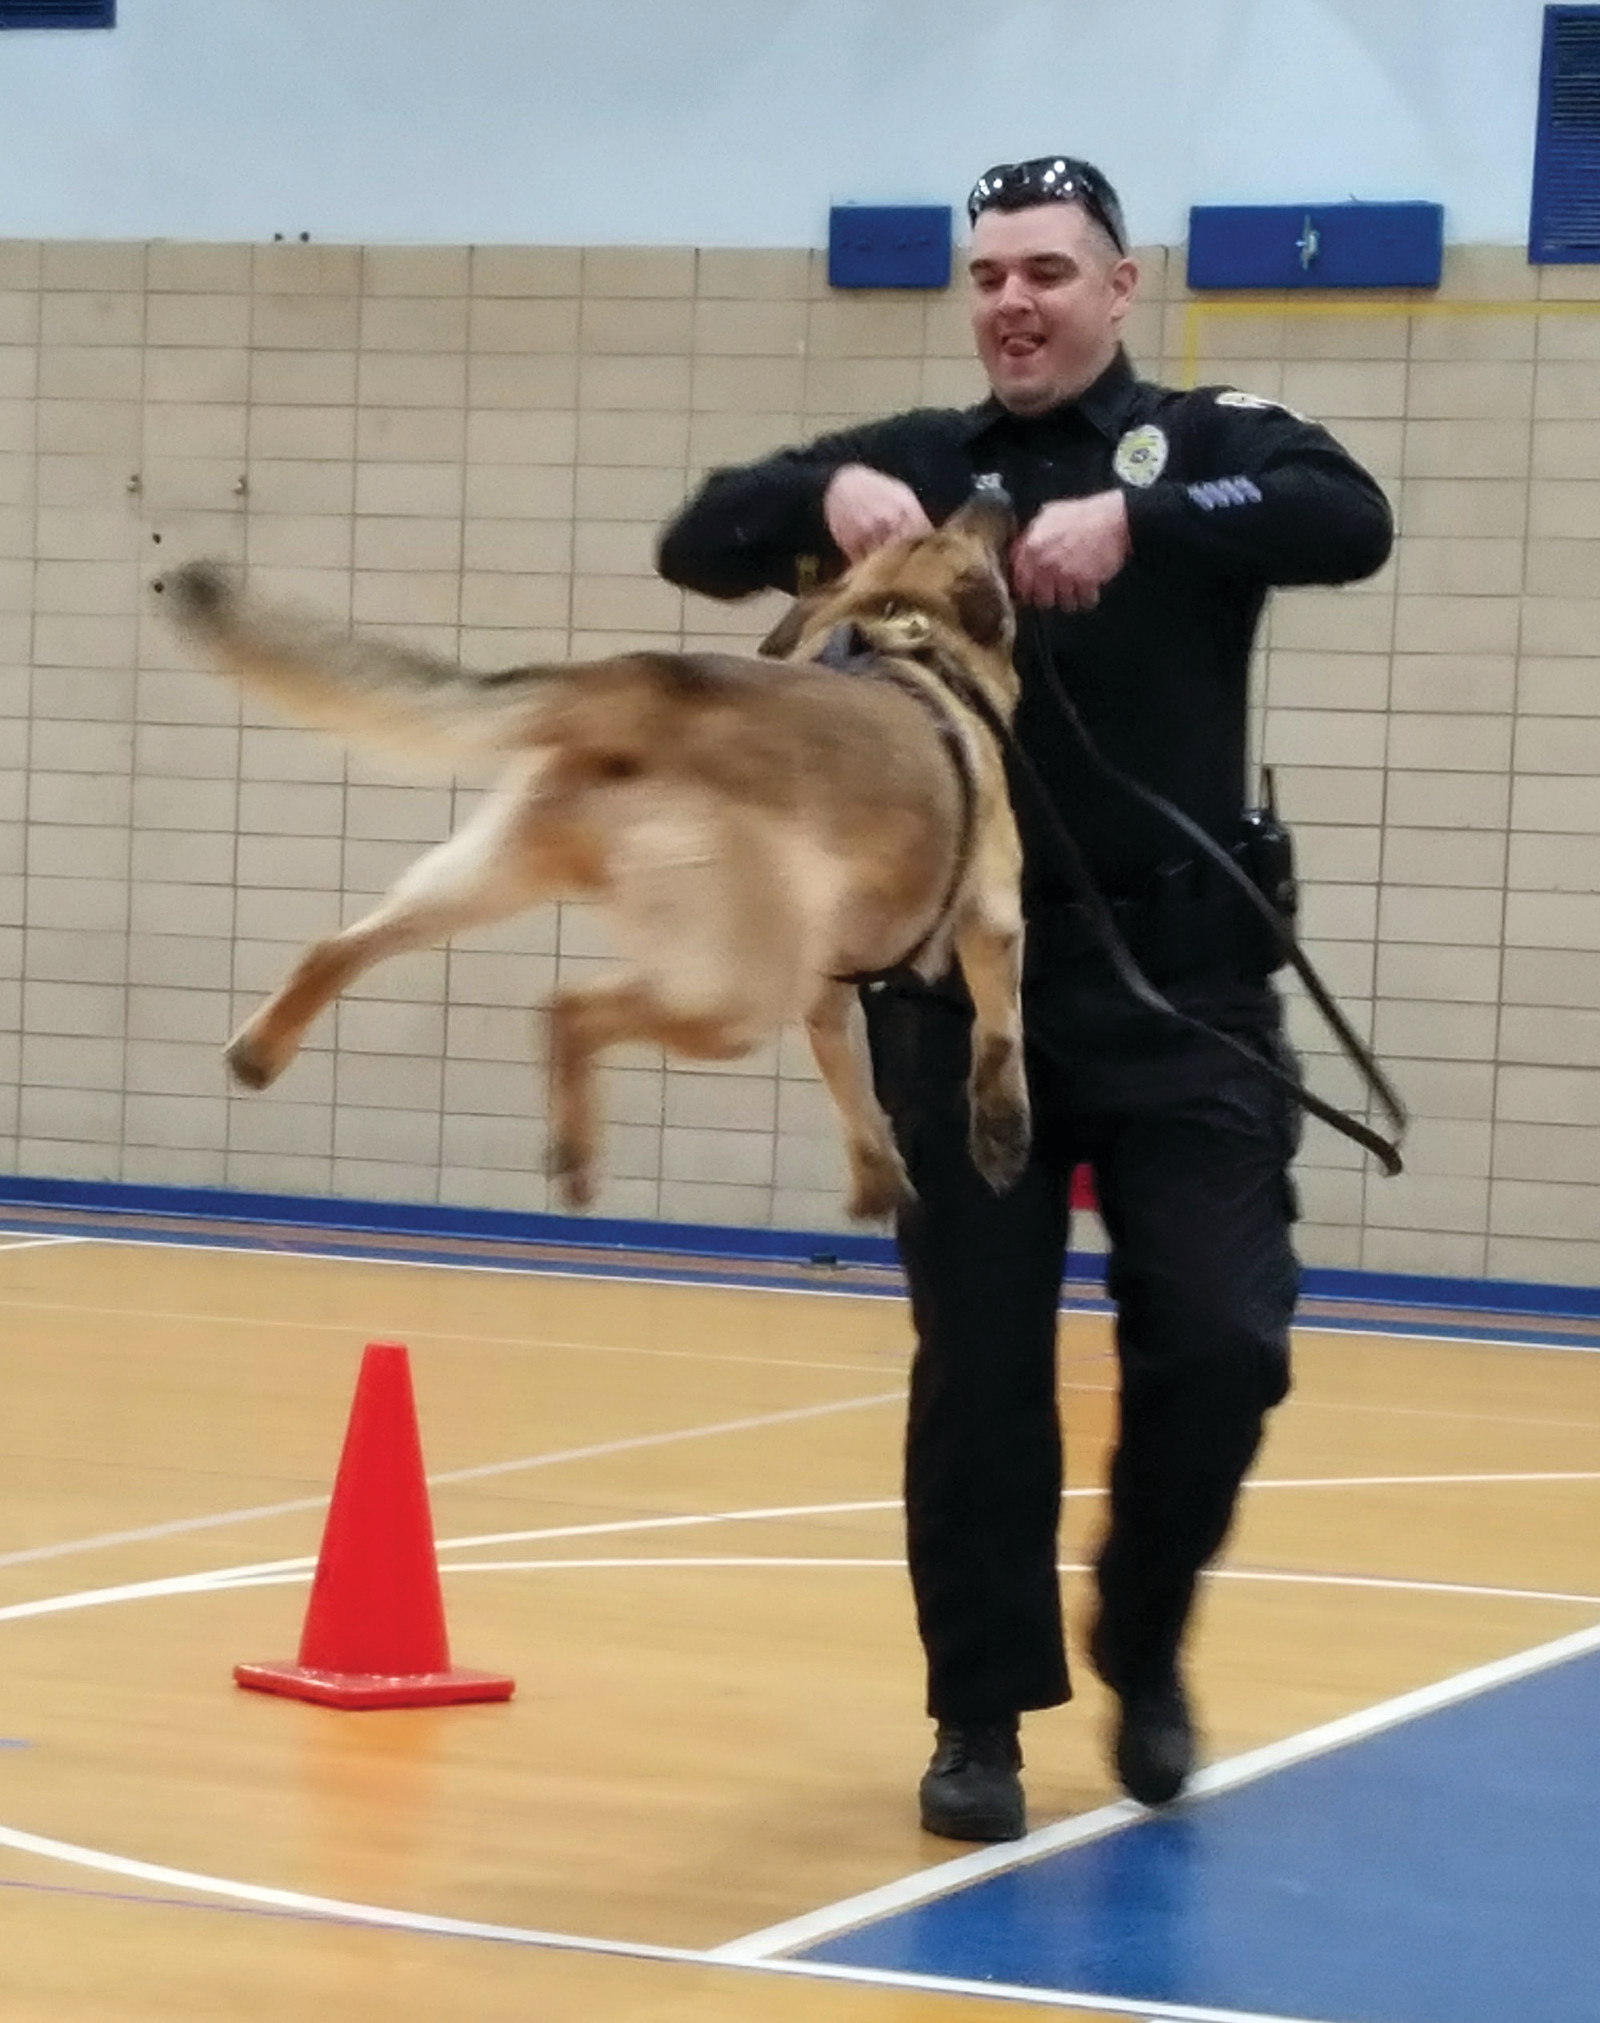 NOT LETTING GO: Officer Bagshaw demonstrates just how strong the dogs' grips are. Here, he rewards Lex with a toy and is able to lift the dog up, still hanging on to the toy.